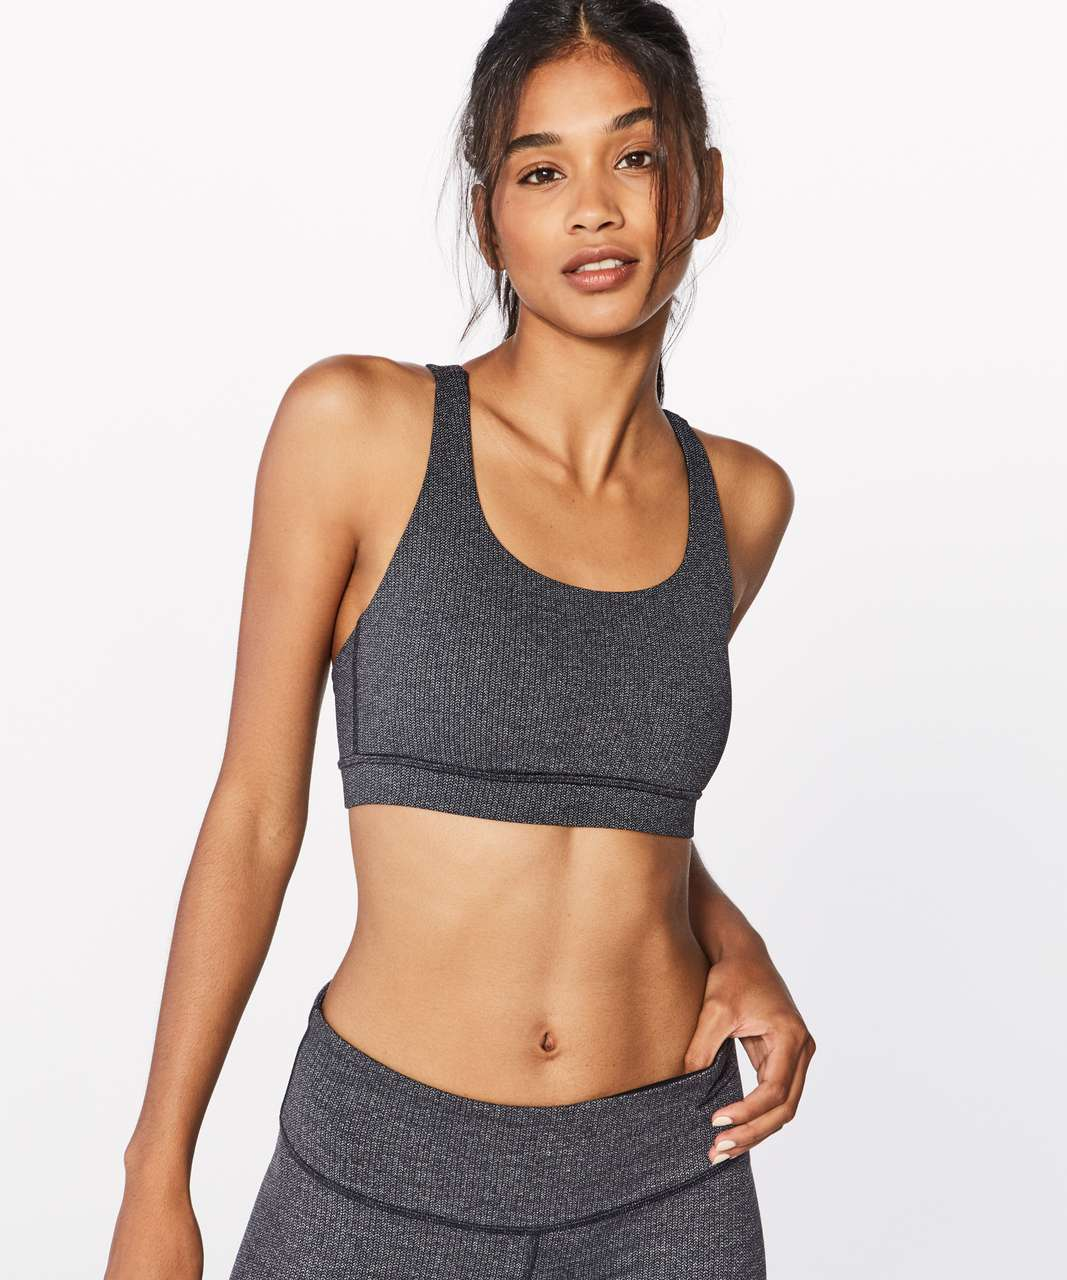 Lululemon Energy Bra - Power Luxtreme Variegated Knit Black Heathered Black